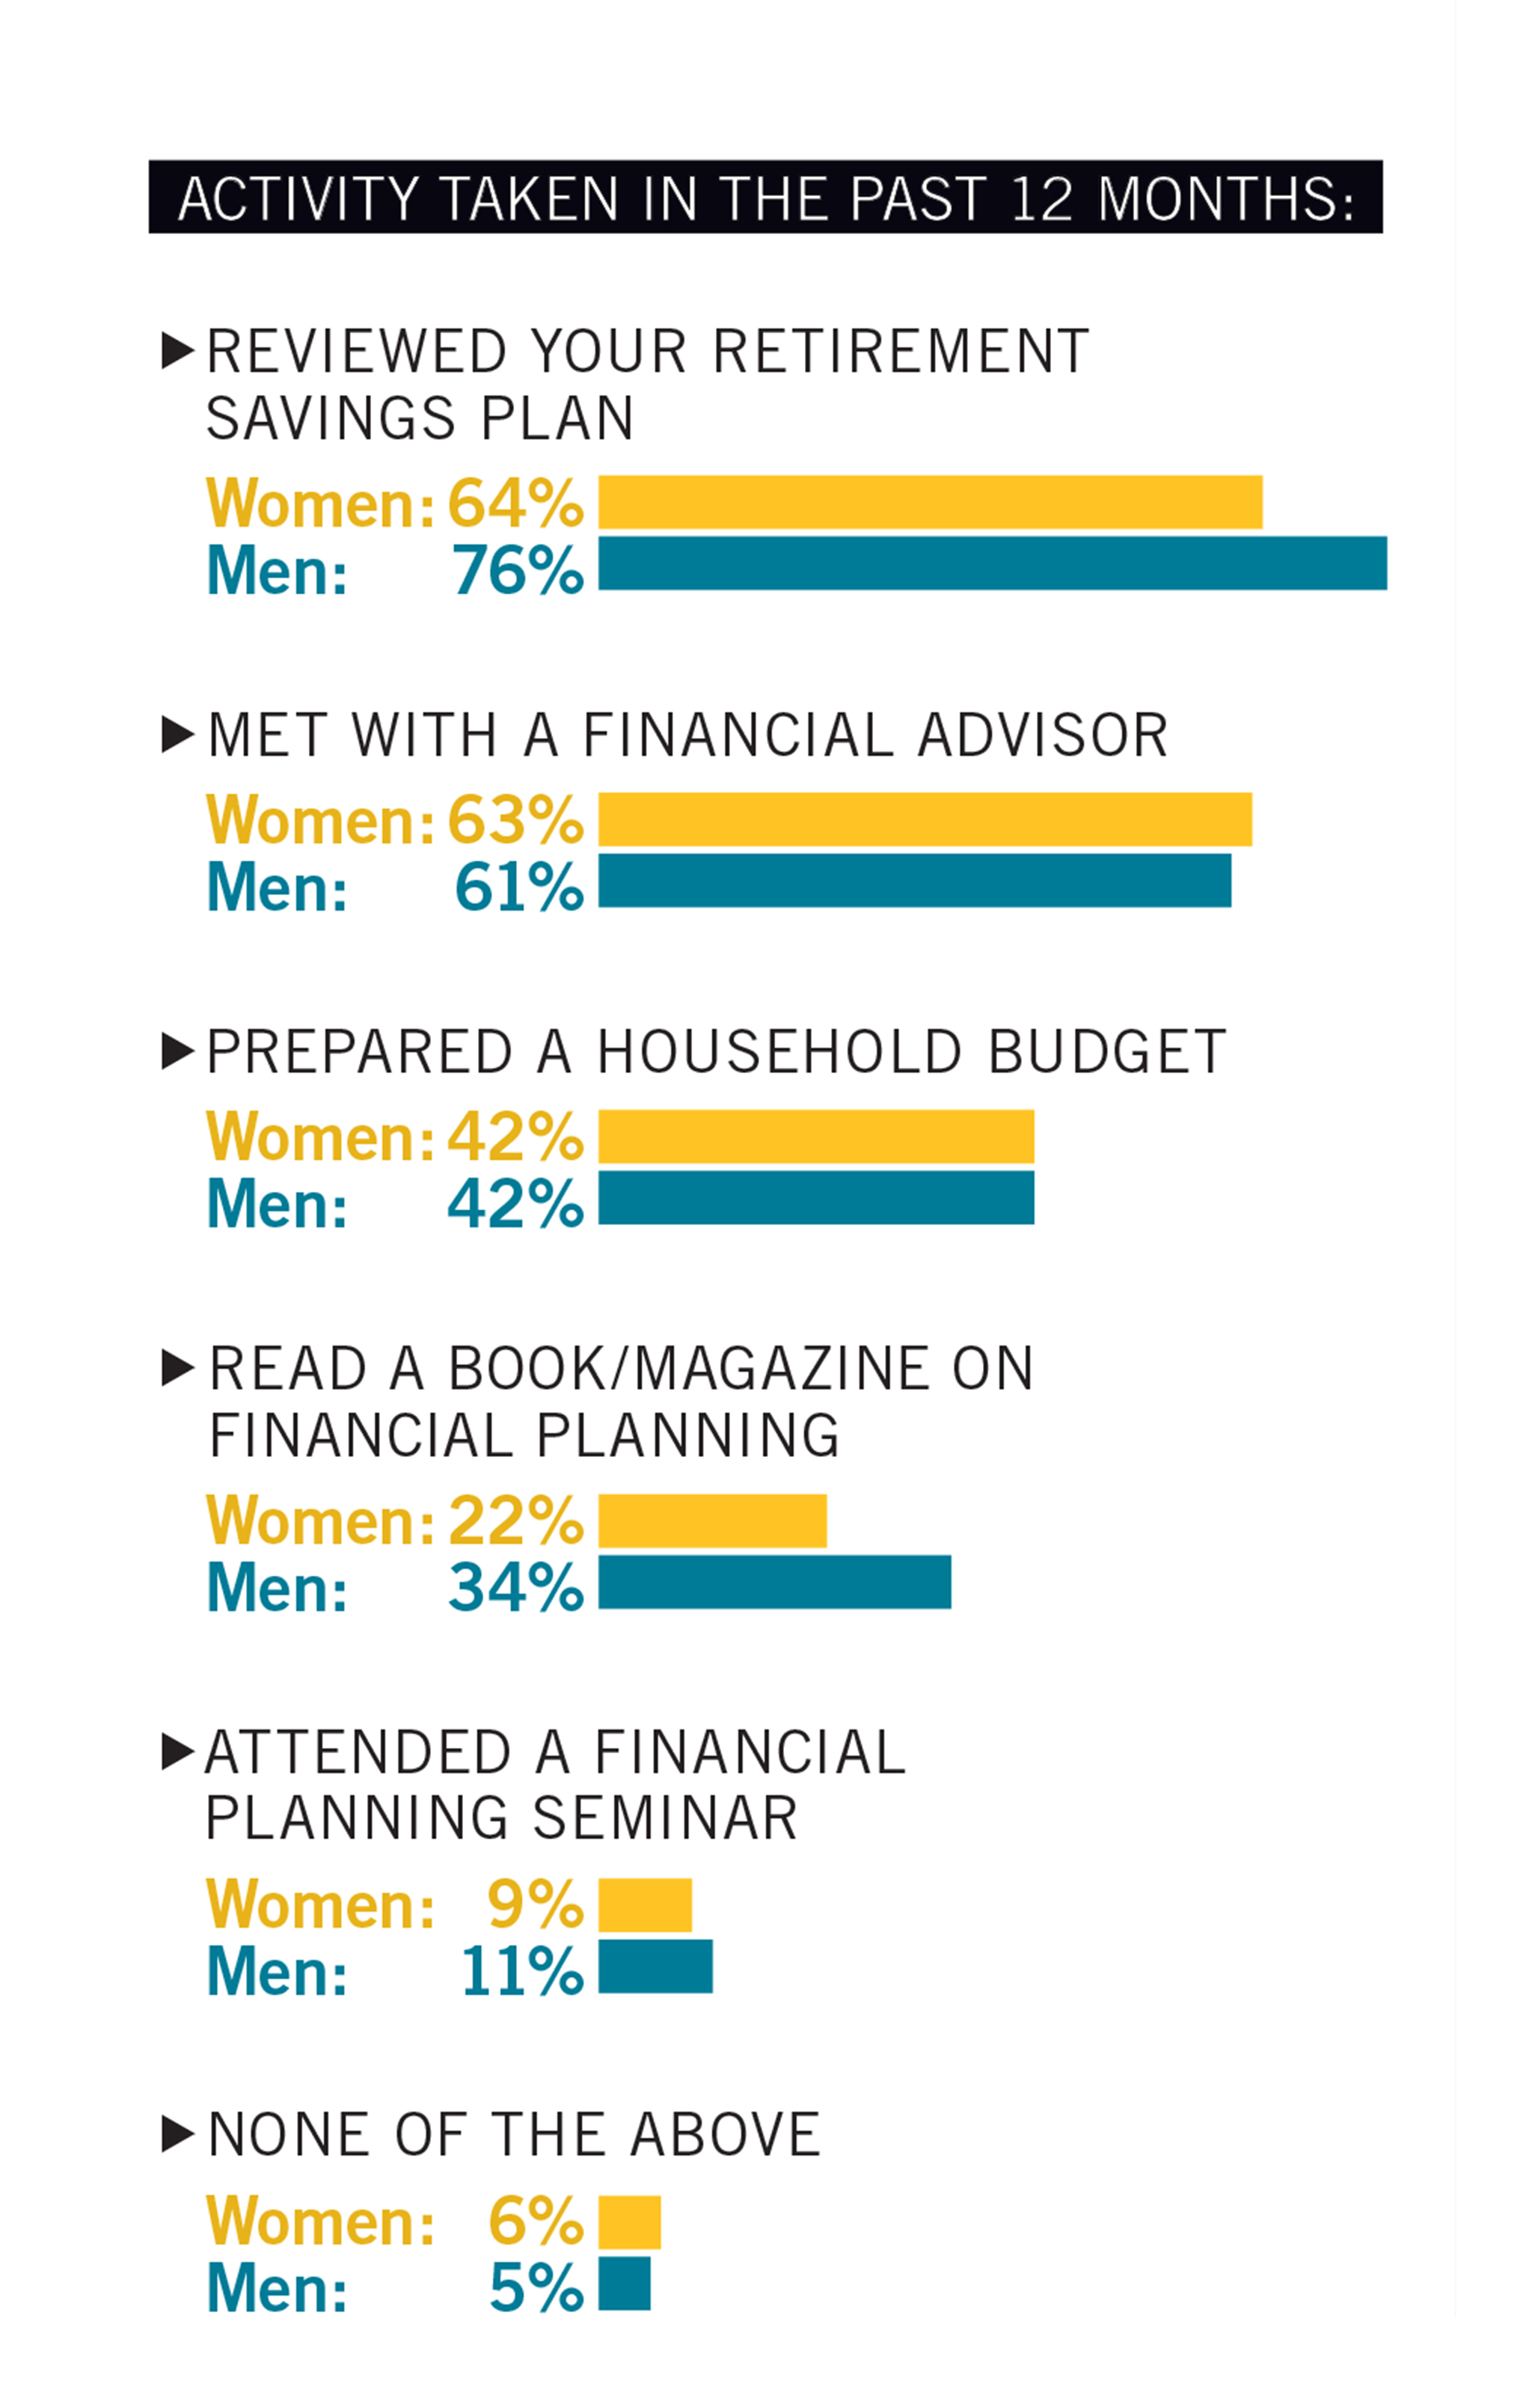 Women and Wealth Steps to Financial Security Infographic